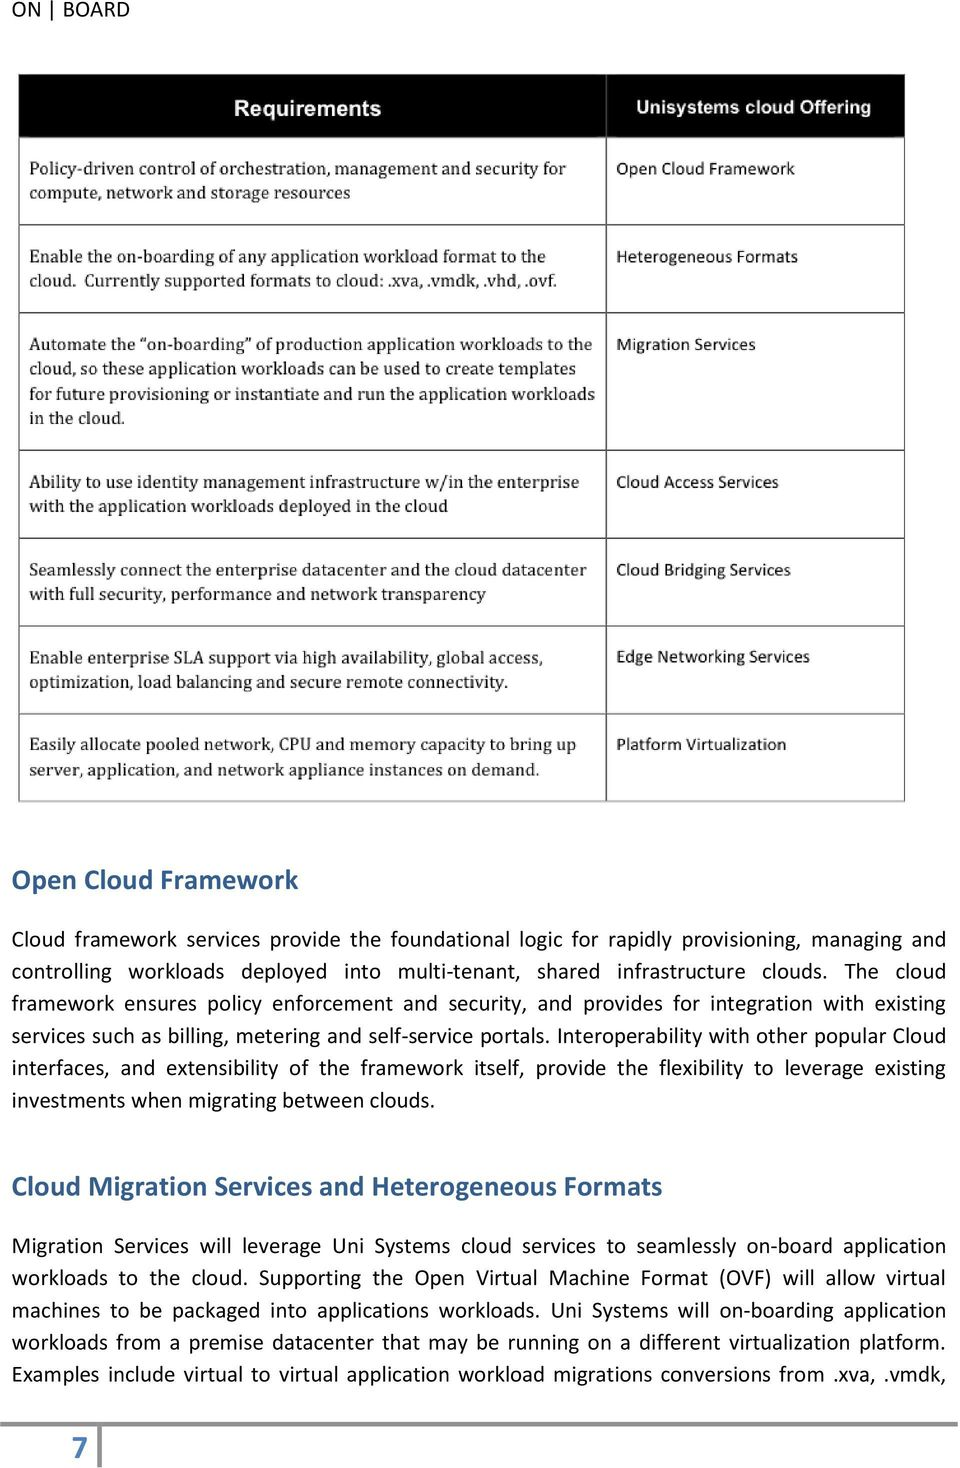 Interoperability with other popular Cloud interfaces, and extensibility of the framework itself, provide the flexibility to leverage existing investments when migrating between clouds.